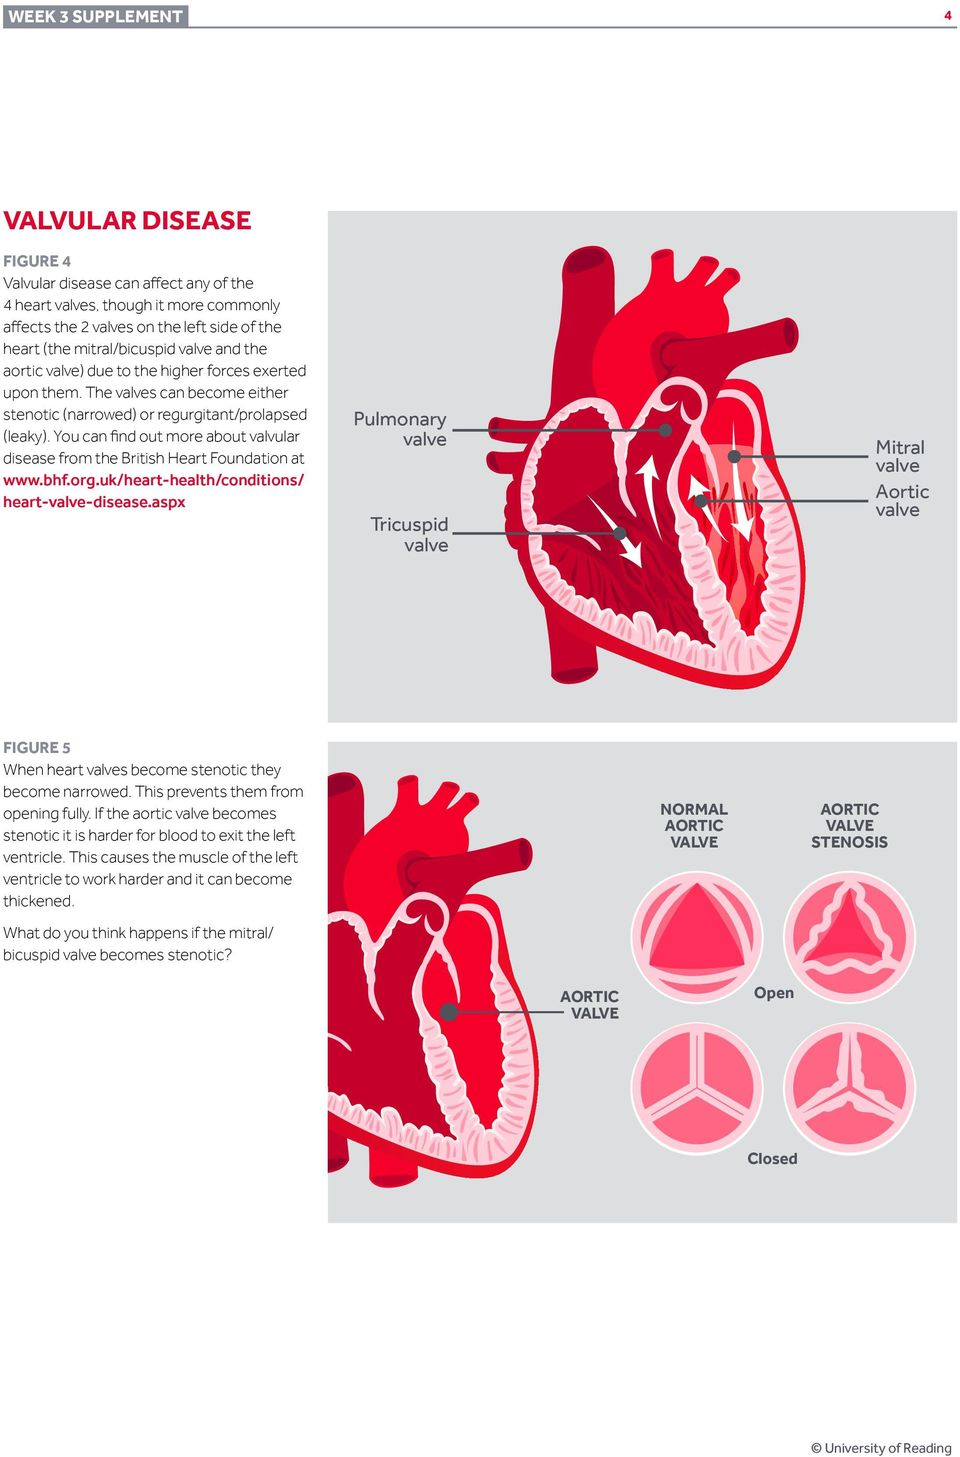 You can find out more about valvular disease from the British Heart Foundation at www.bhf.org.uk/heart-health/conditions/ heart--disease.